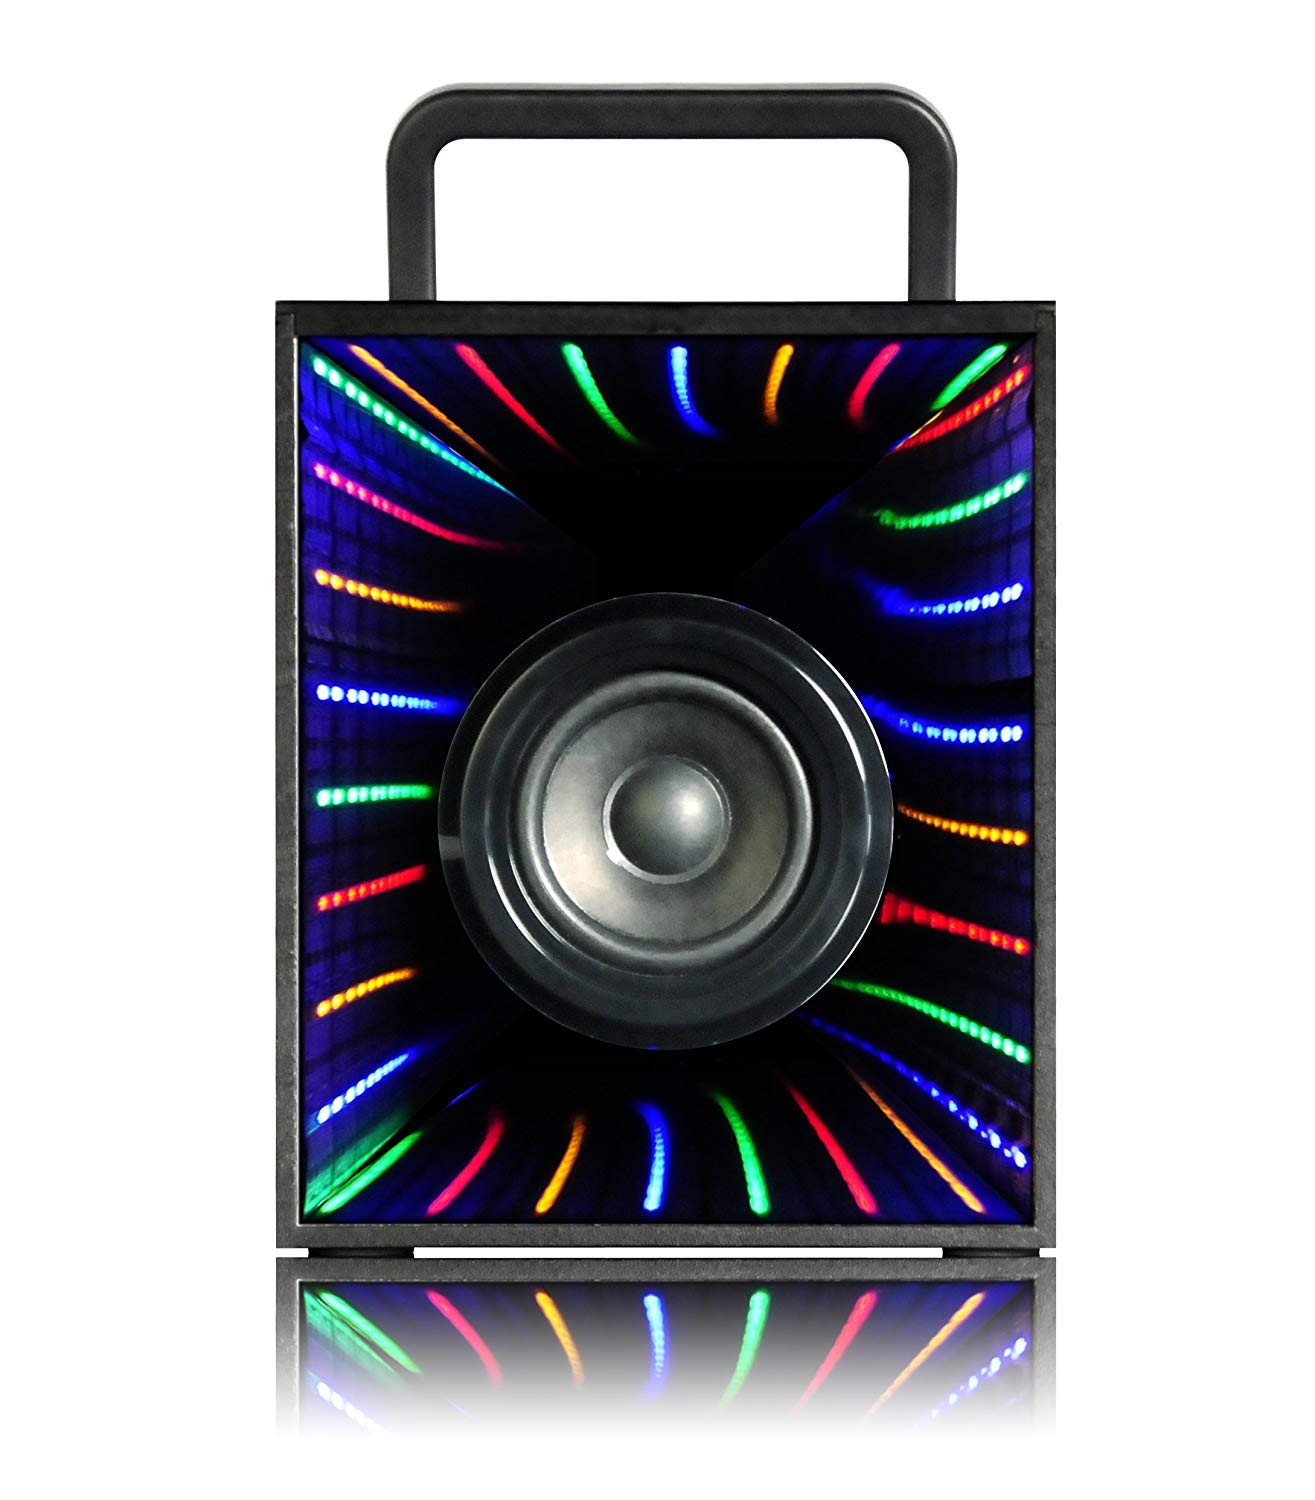 Street Dancing Speaker Waterproof LED Pulse Light Party Speaker for iPhone iPad Tablets Outdoor Sports Camping BBQ Party Single Bluetooth Portable Speakers